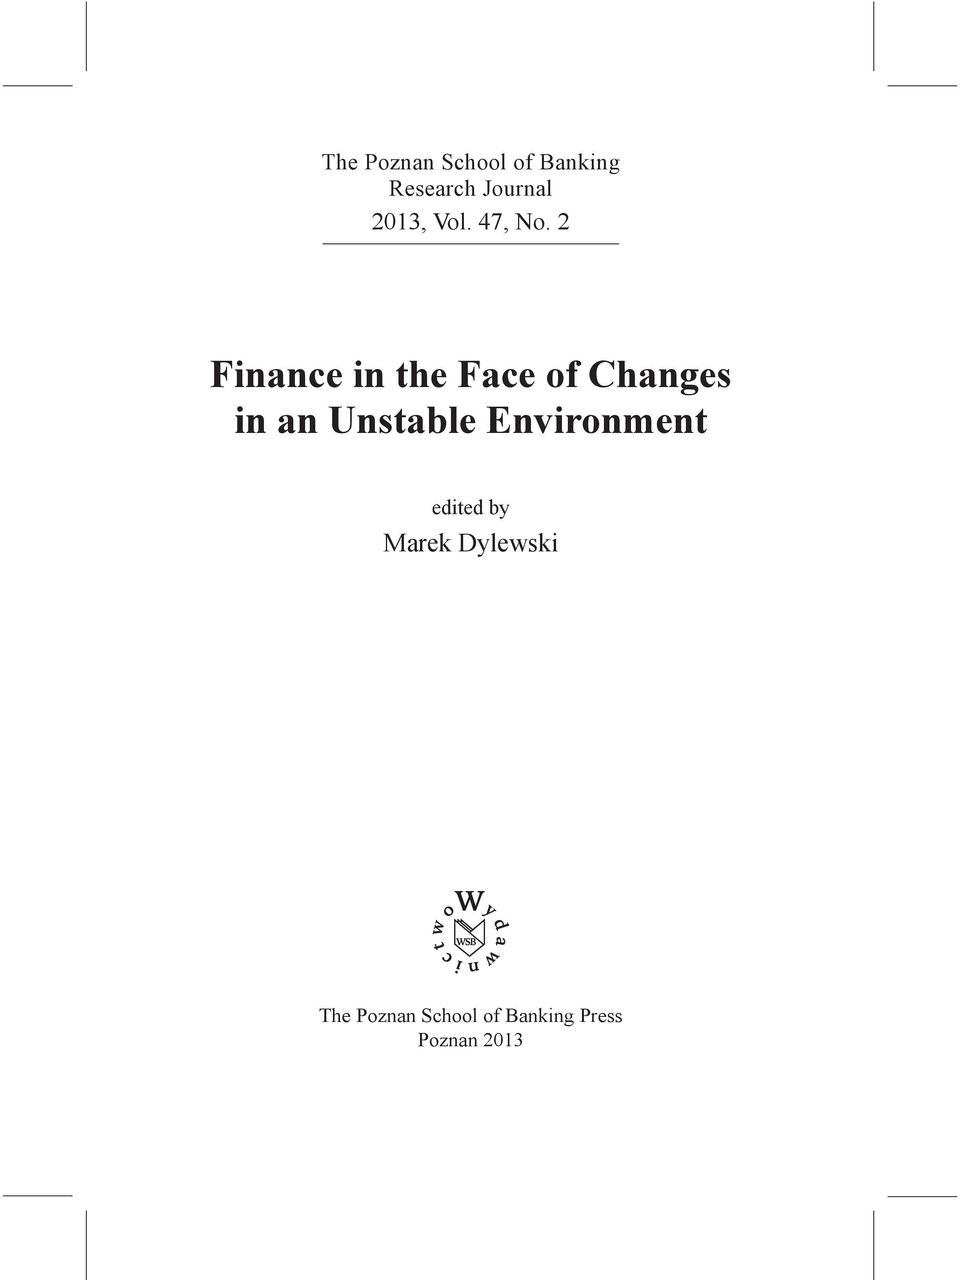 2 Finance in the Face of Changes in an Unstable